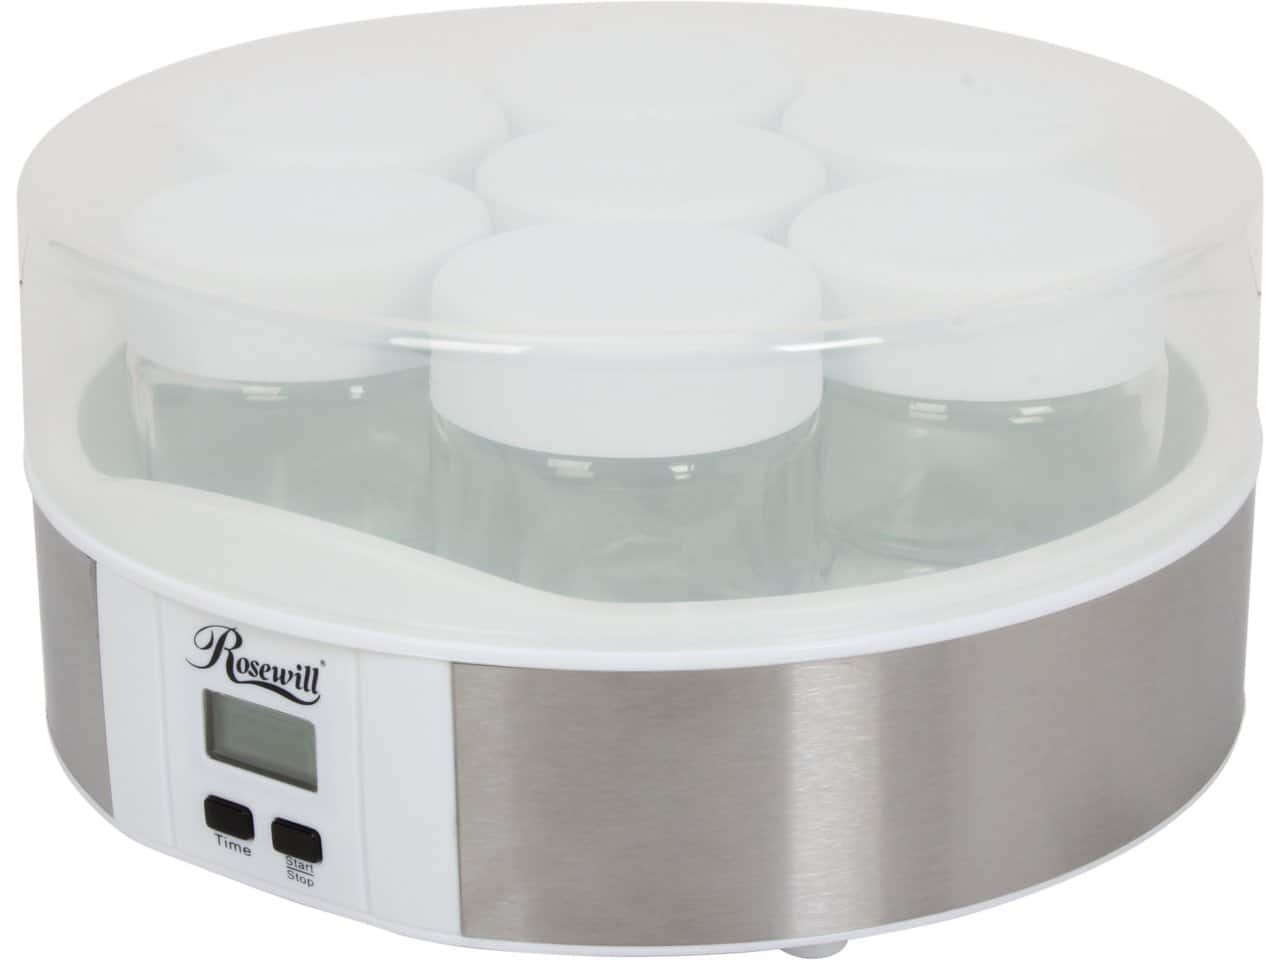 Rosewill 7 Glass Cups Digital Yogurt Maker (RHYM-13001) for $9.99 AR + Free Shipping @ Newegg.com